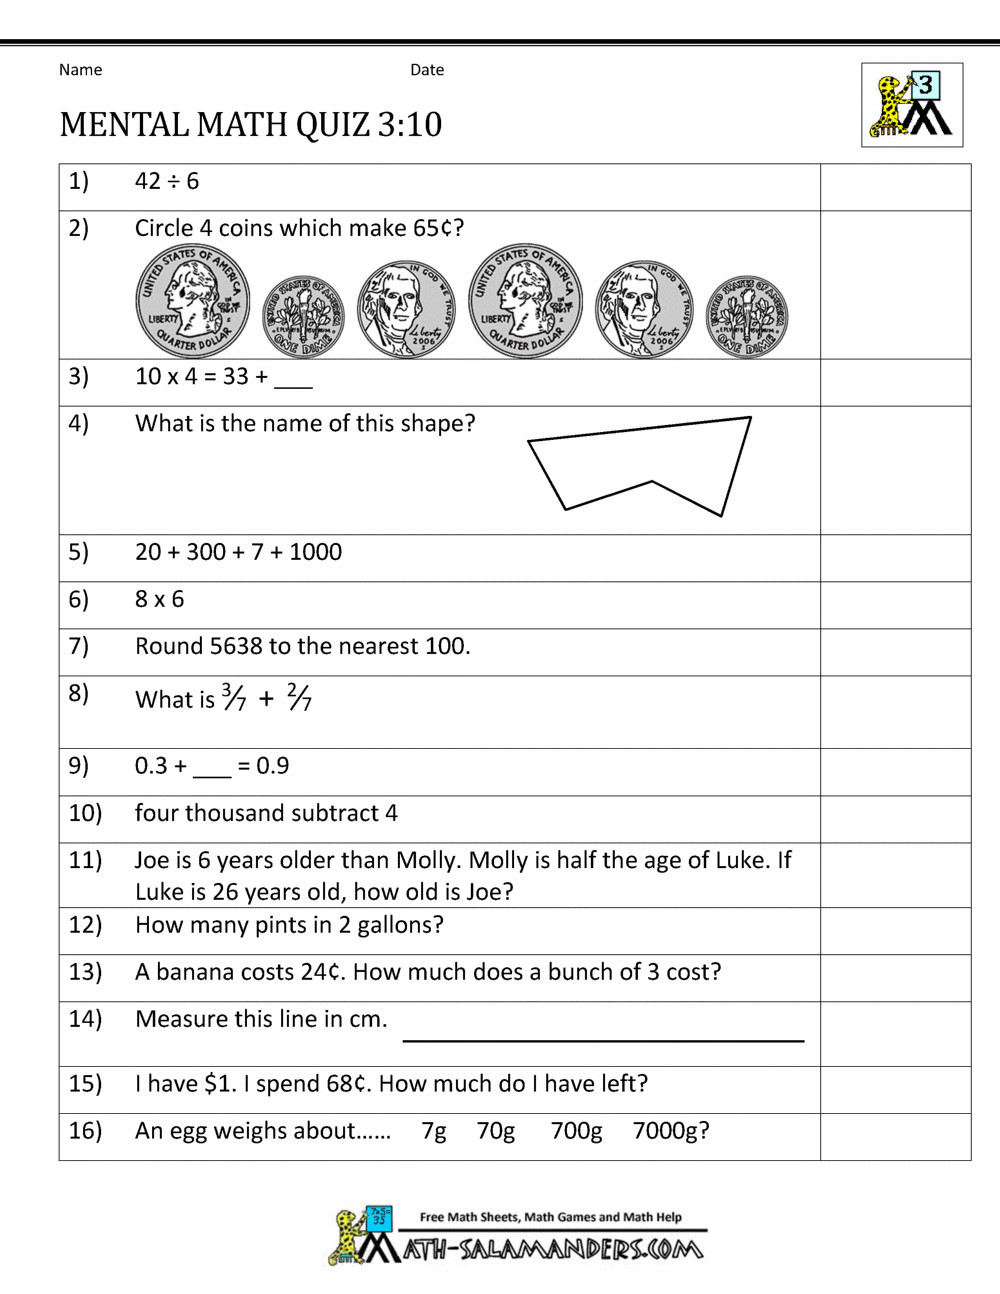 Mental Math Worksheets Grade 6 Printable Coloring Worksheets 3rd Grade Mental Math 3rd